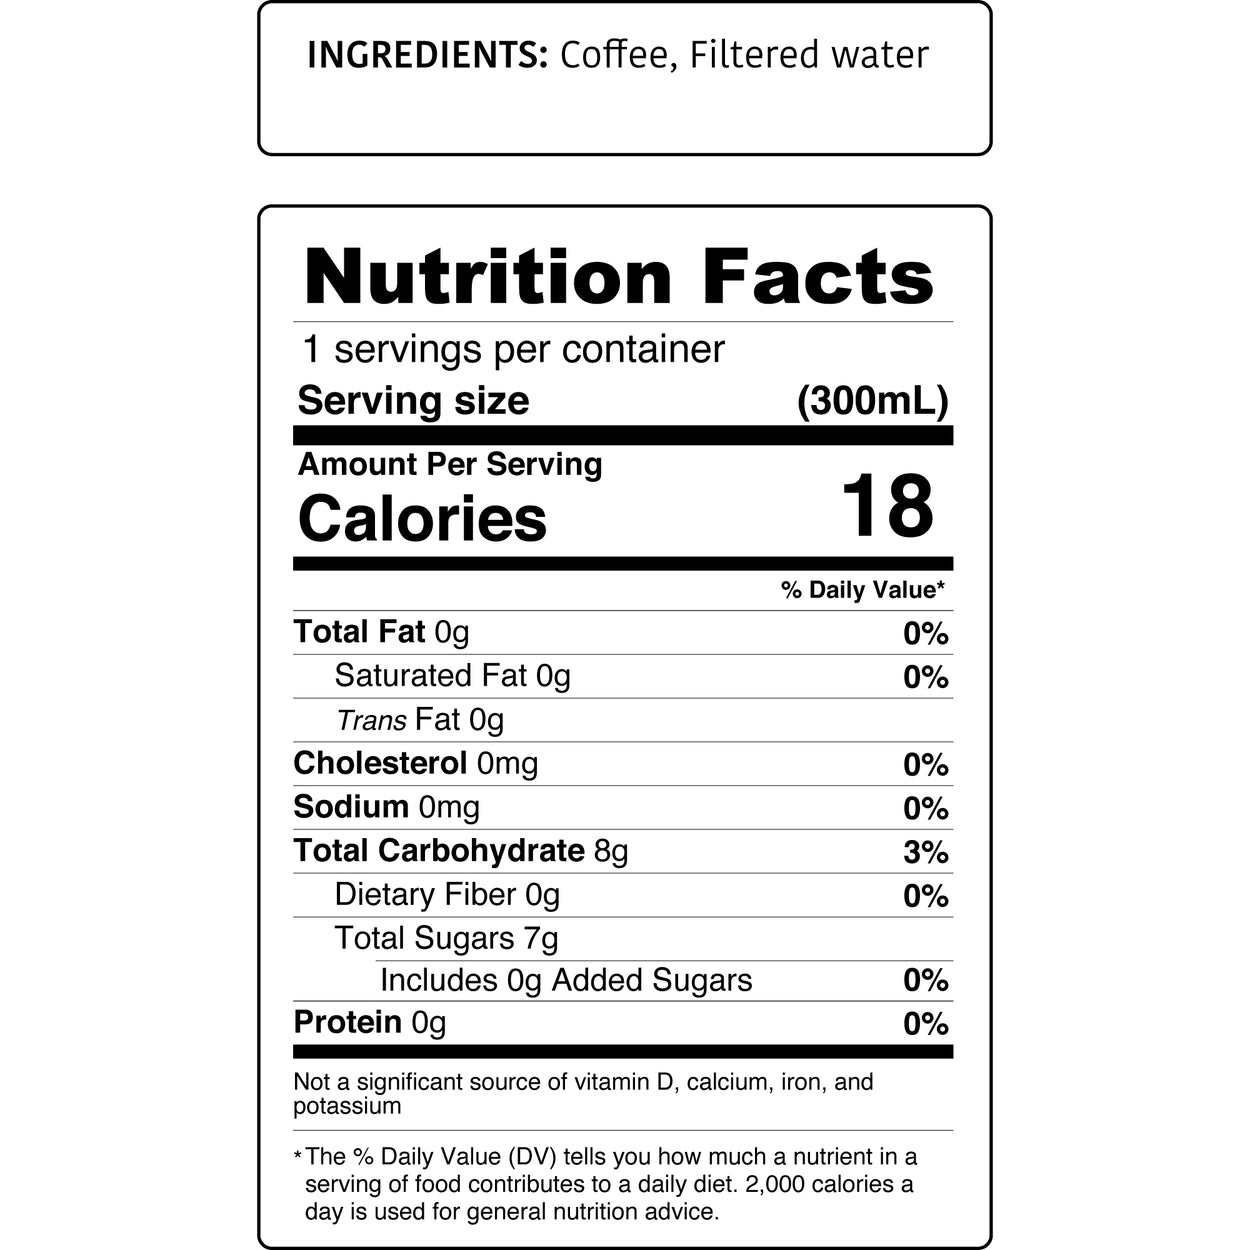 Kimbala Coffee Neat nutrition facts for 10.2oz bottle